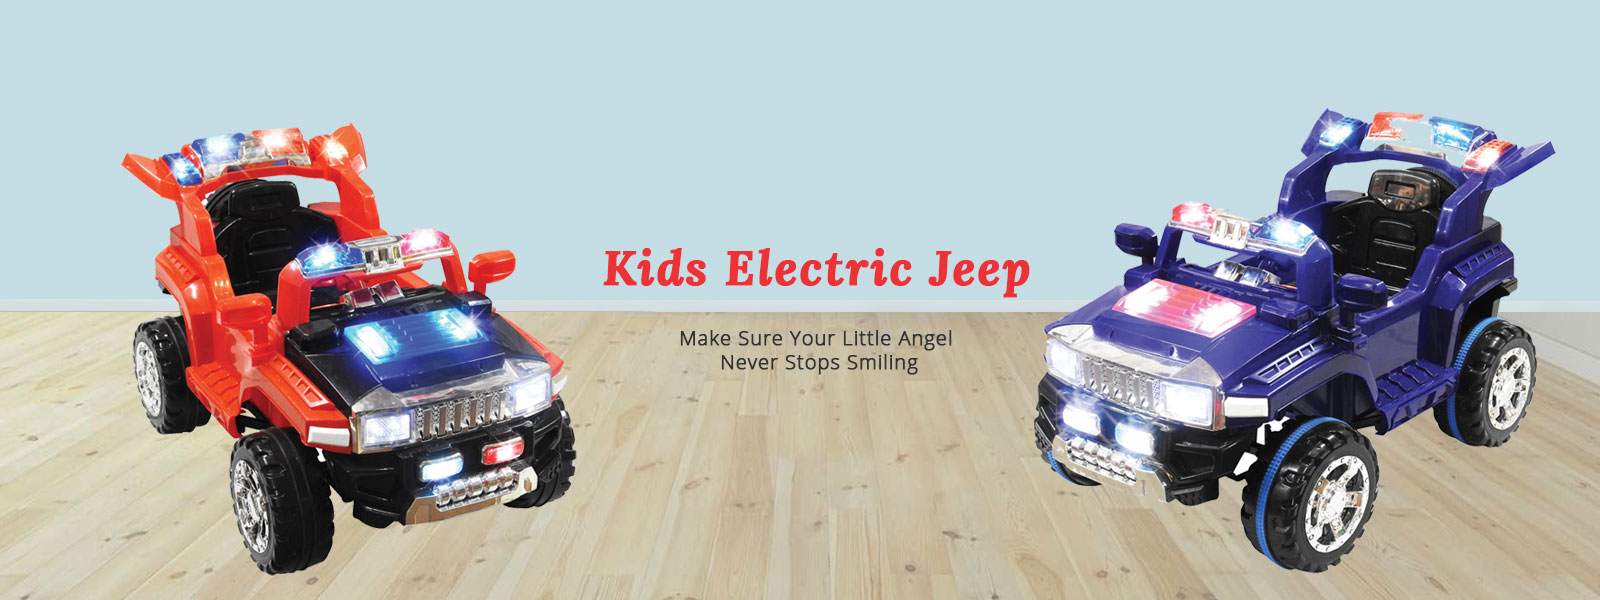 Kids Electric Jeep Manufacturers in Virar